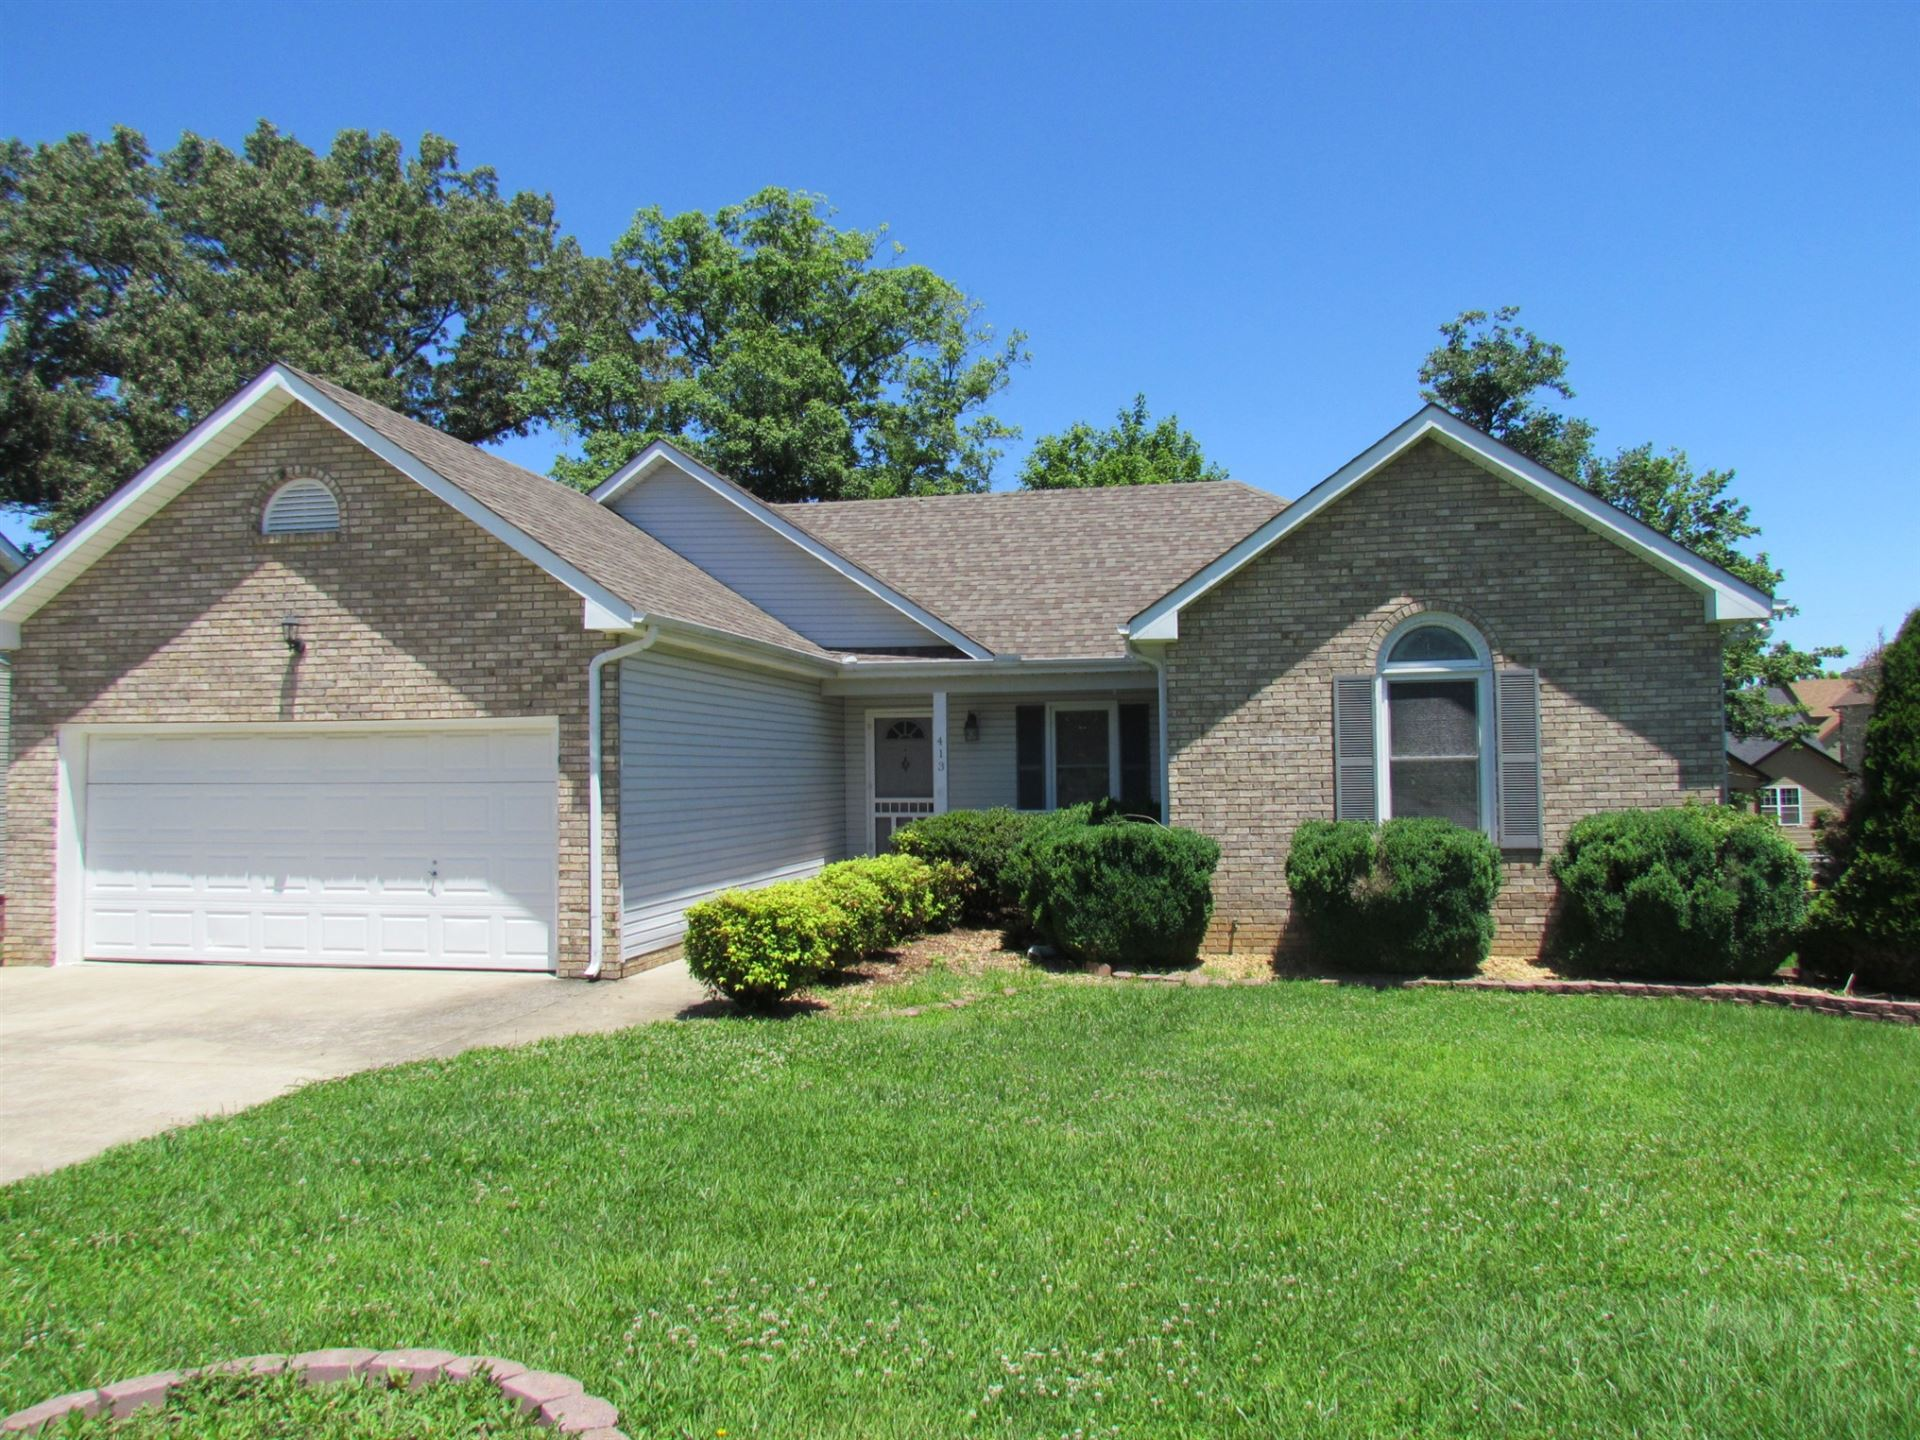 413 Cyprus Ct, Clarksville, TN 37040 - MLS#: 2209494